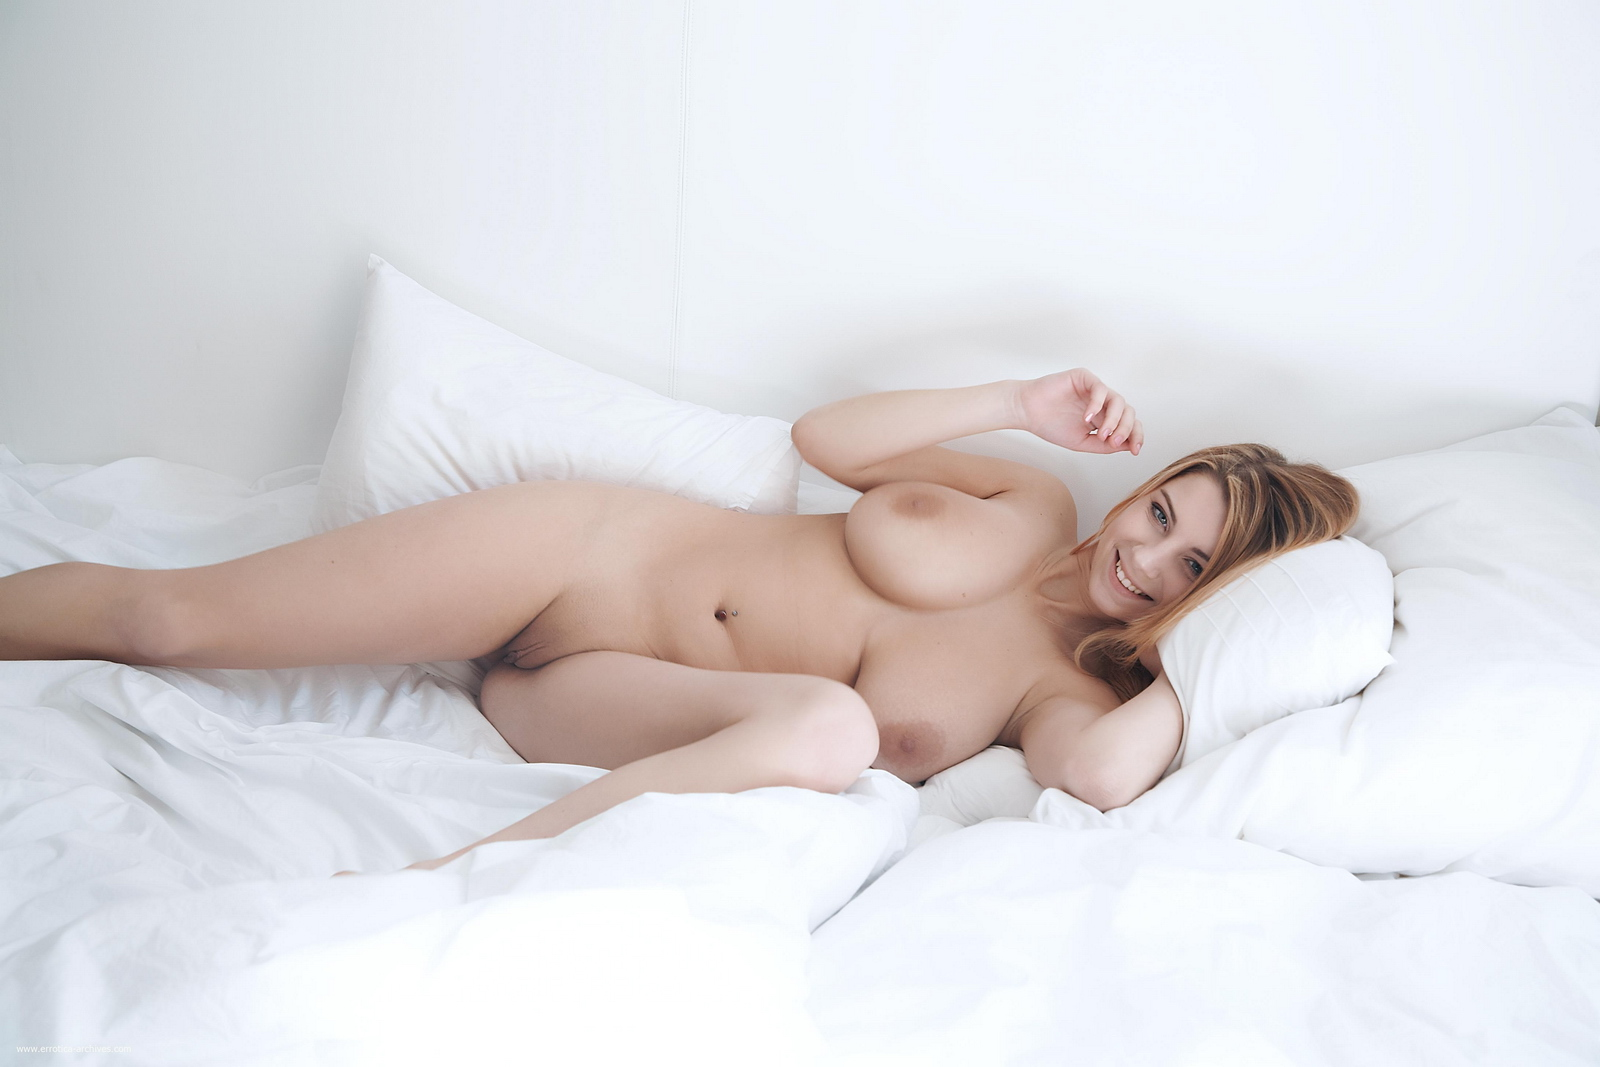 cathy-huge-tits-bedroom-naked-errotica-archives-27